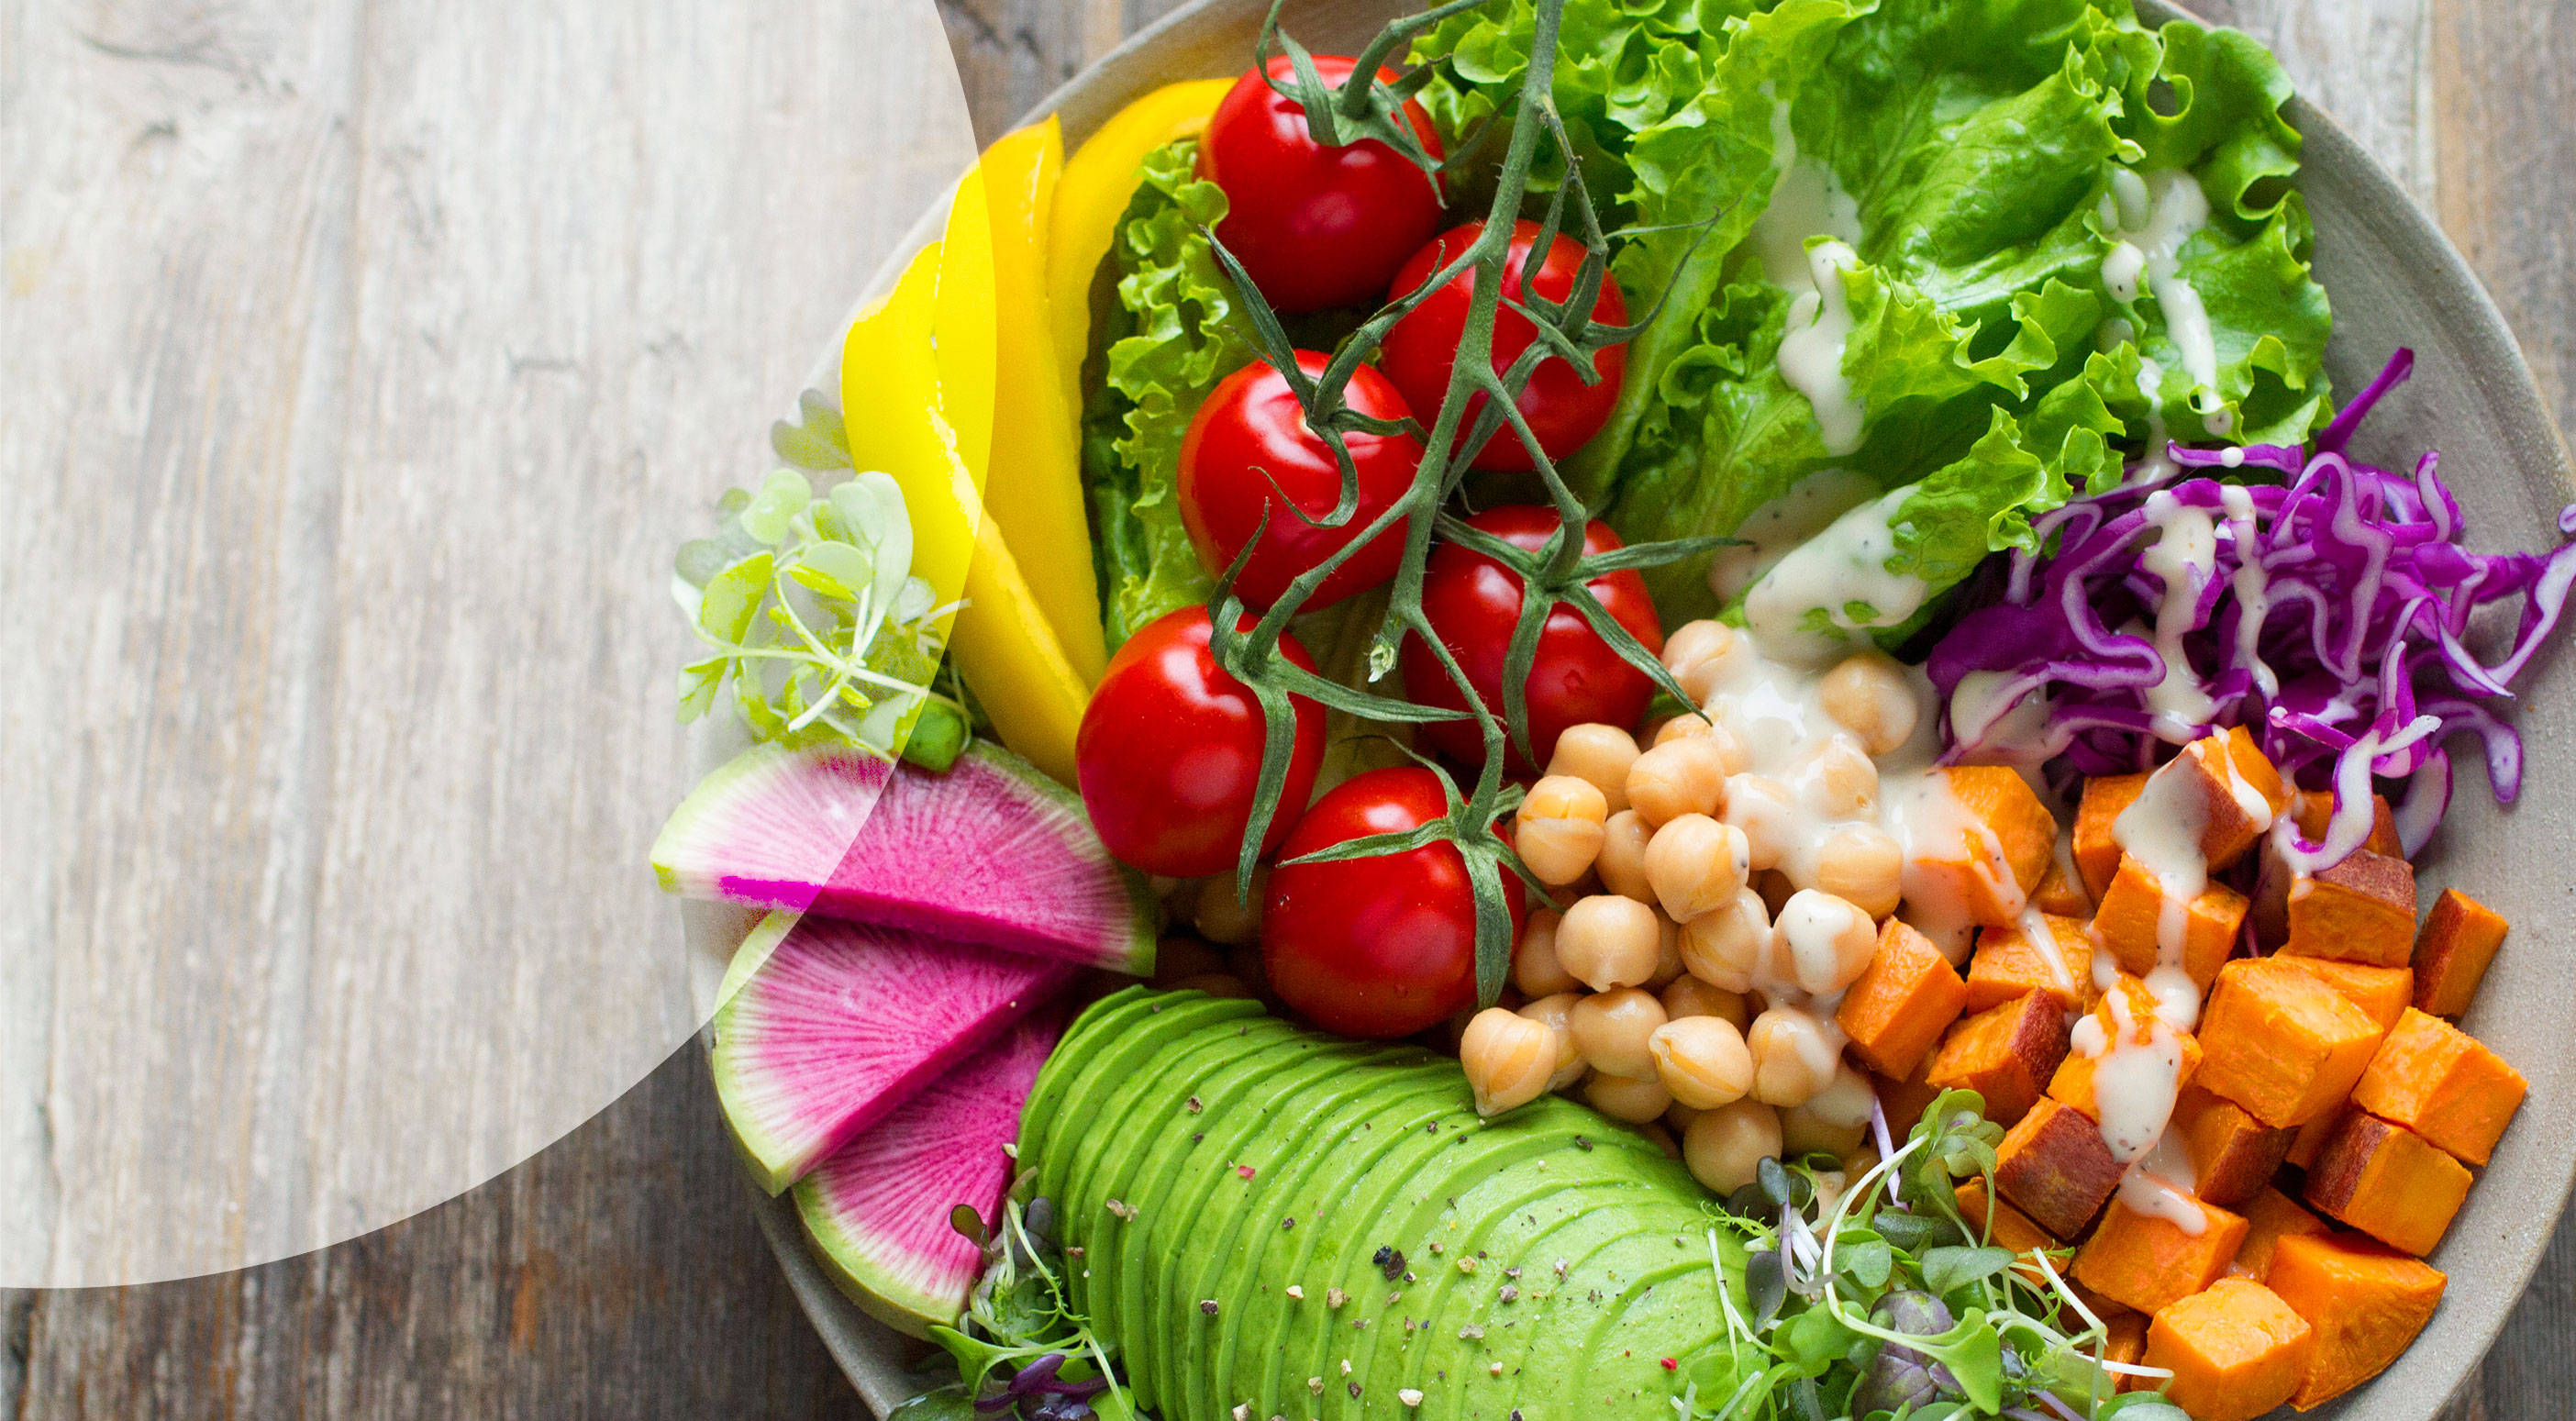 A bowl full of colorful fruits, vegetables, leafy greens, legumes